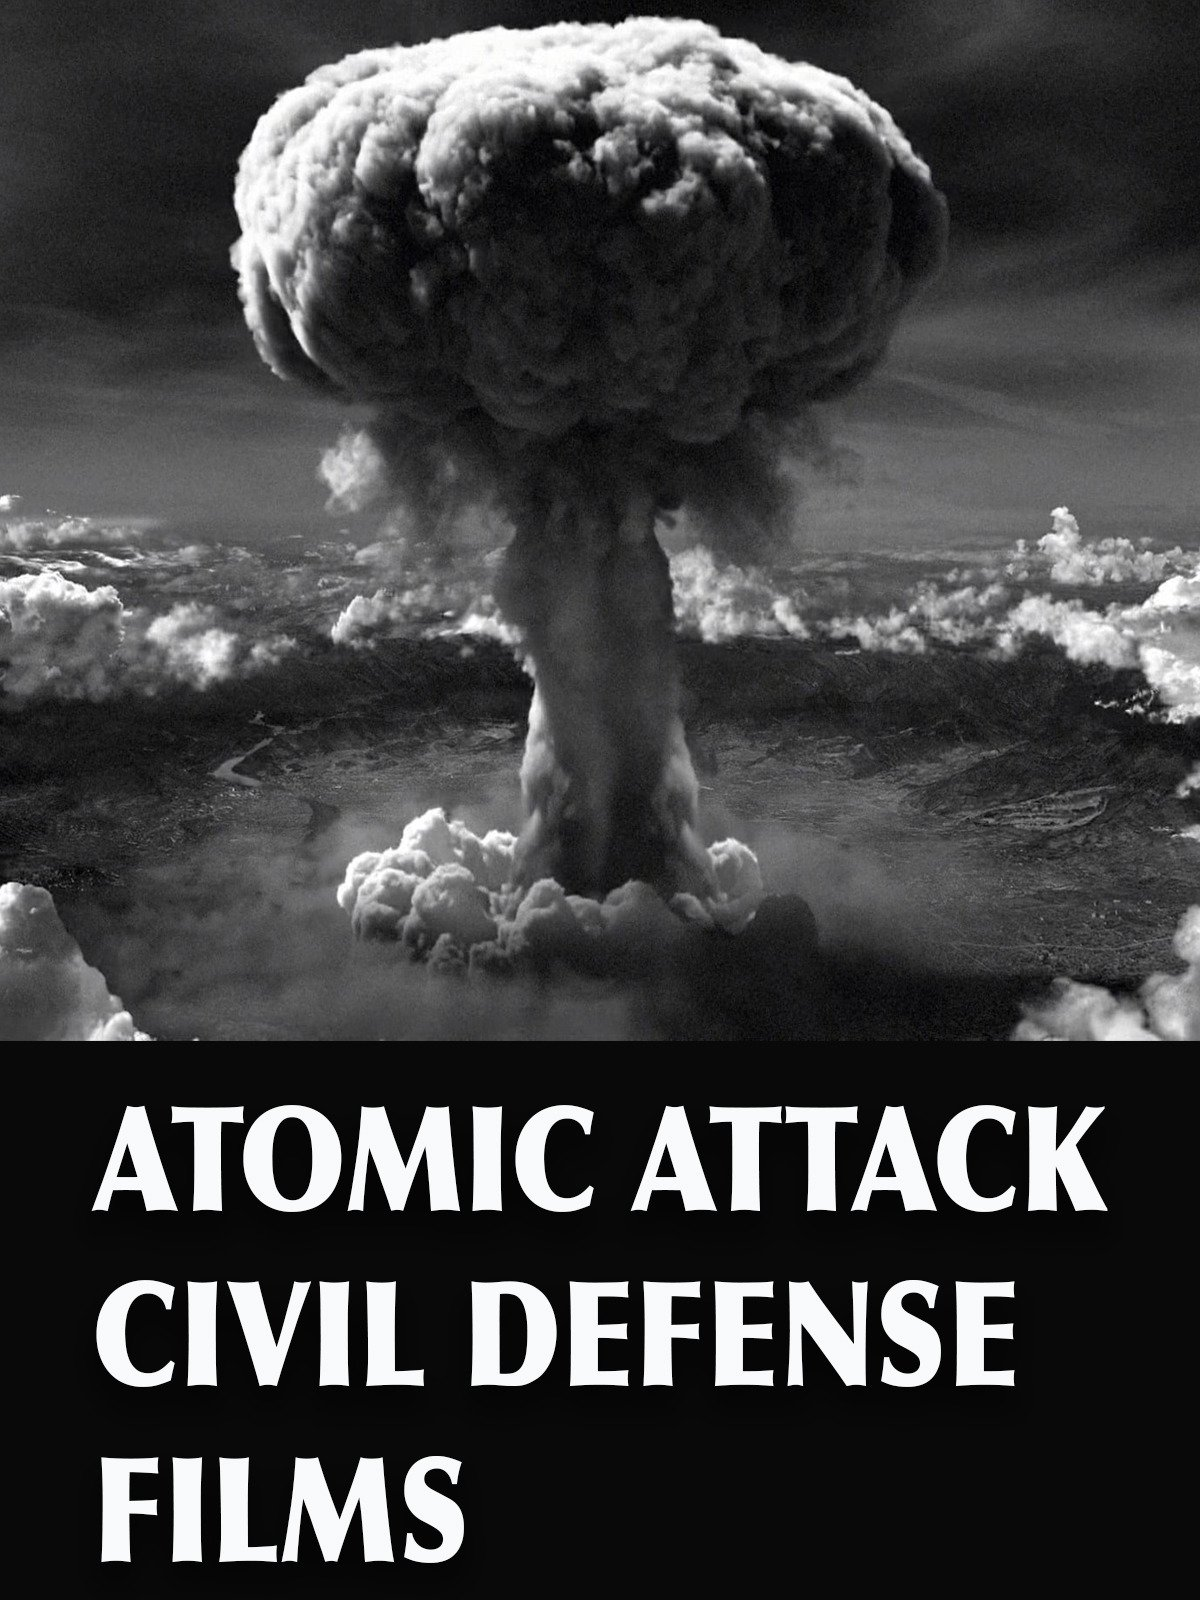 Atomic Attack Civil Defense Films